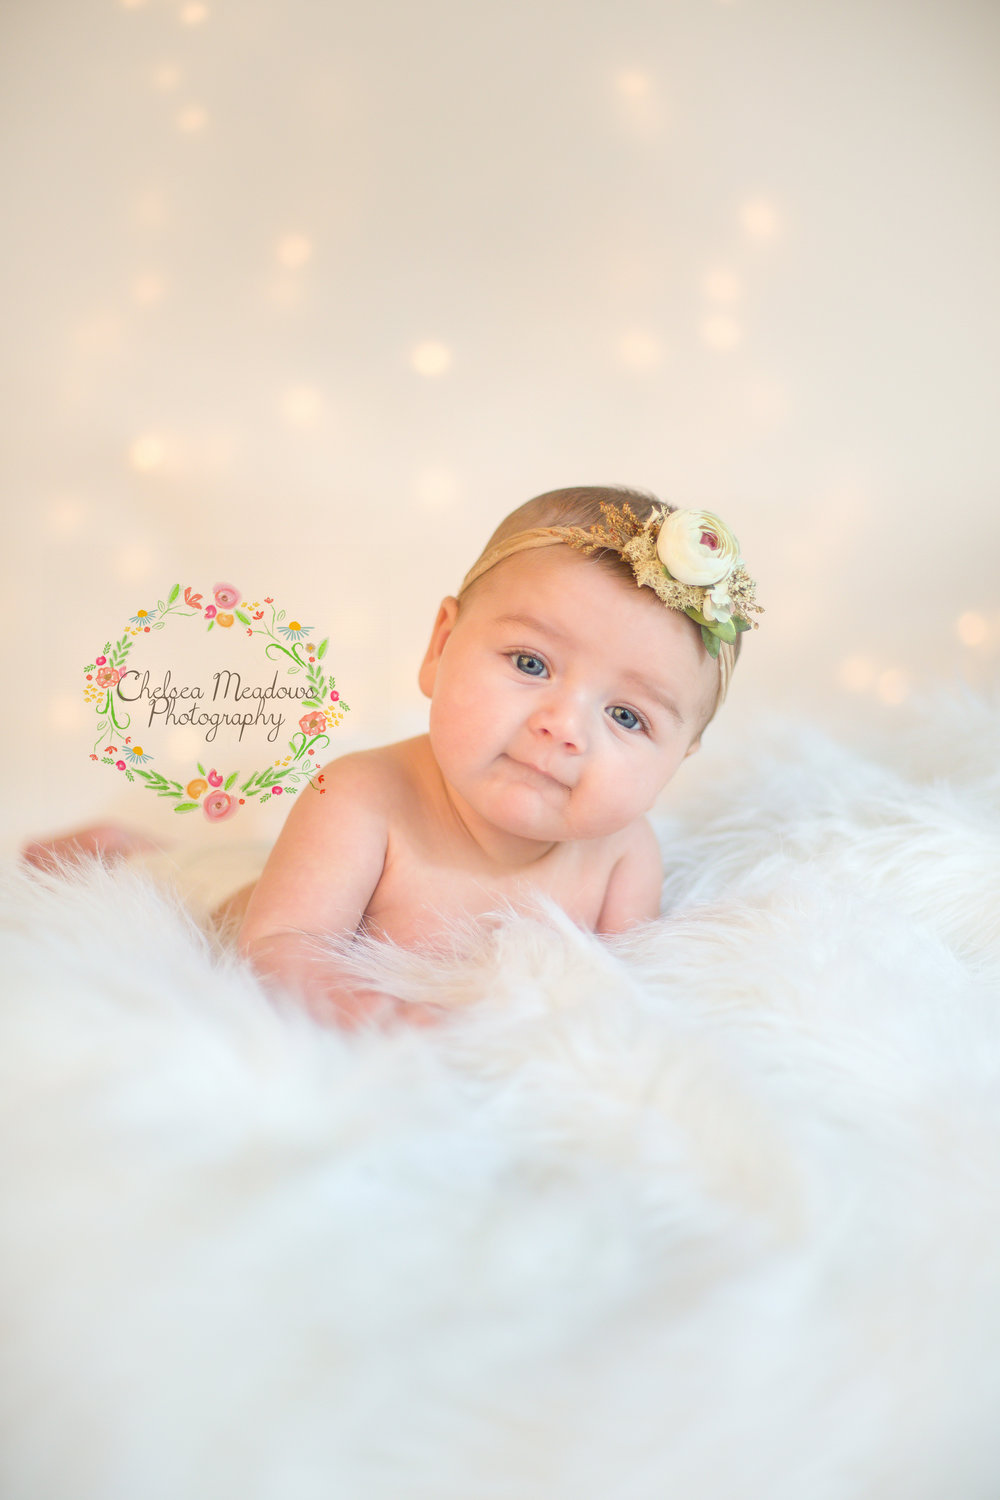 Ava's 2 Month Session - Chelsea Meadows Photography (2)_edited-1.jpg